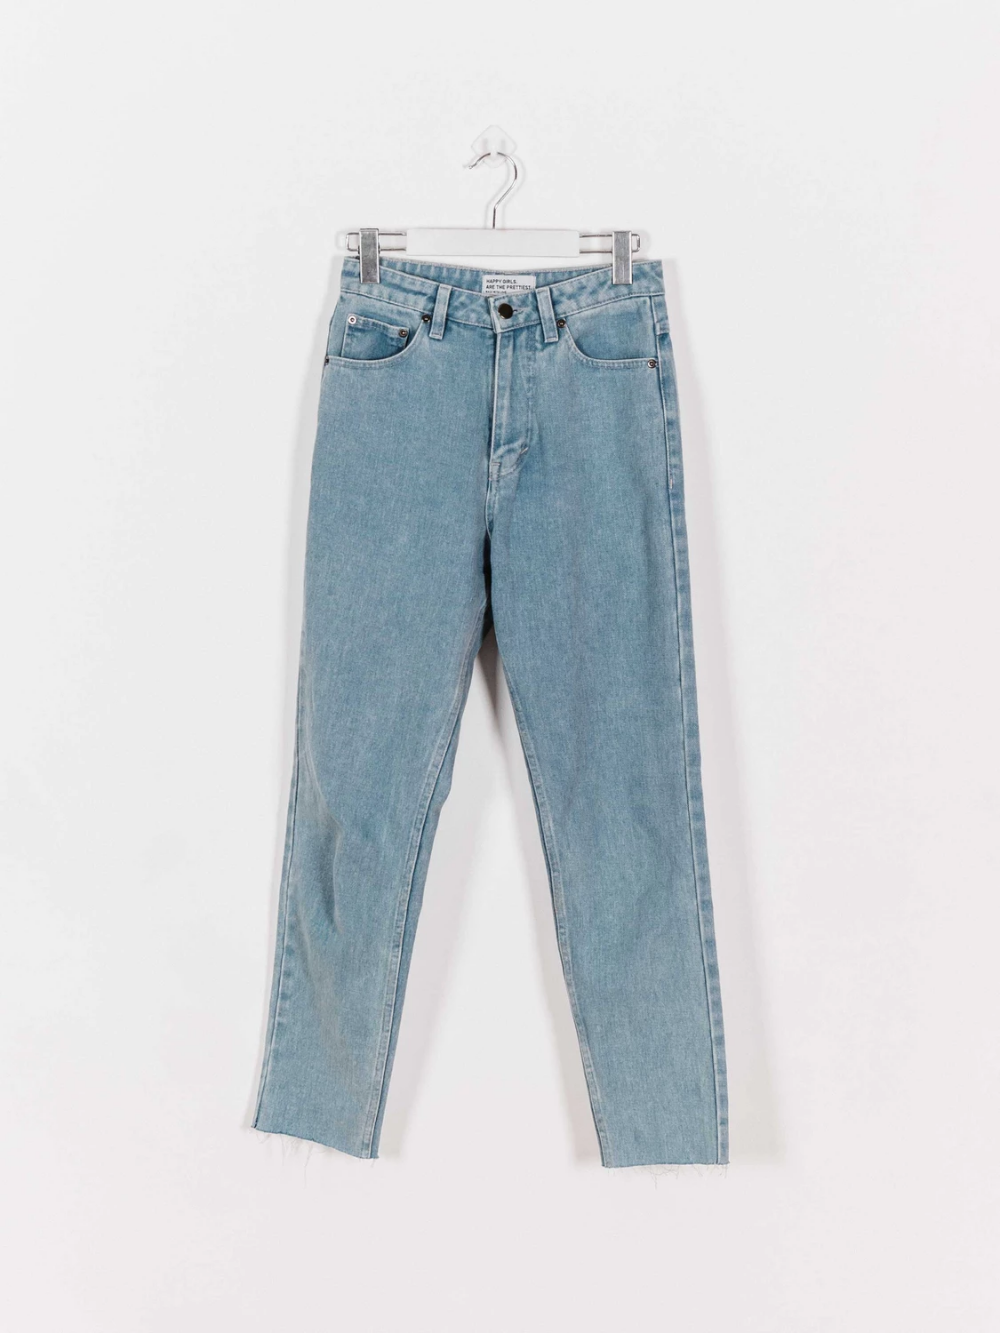 Fred Mom Jeans Blue Mom Jeans Women Denim Jeans Fashion Clothing Store